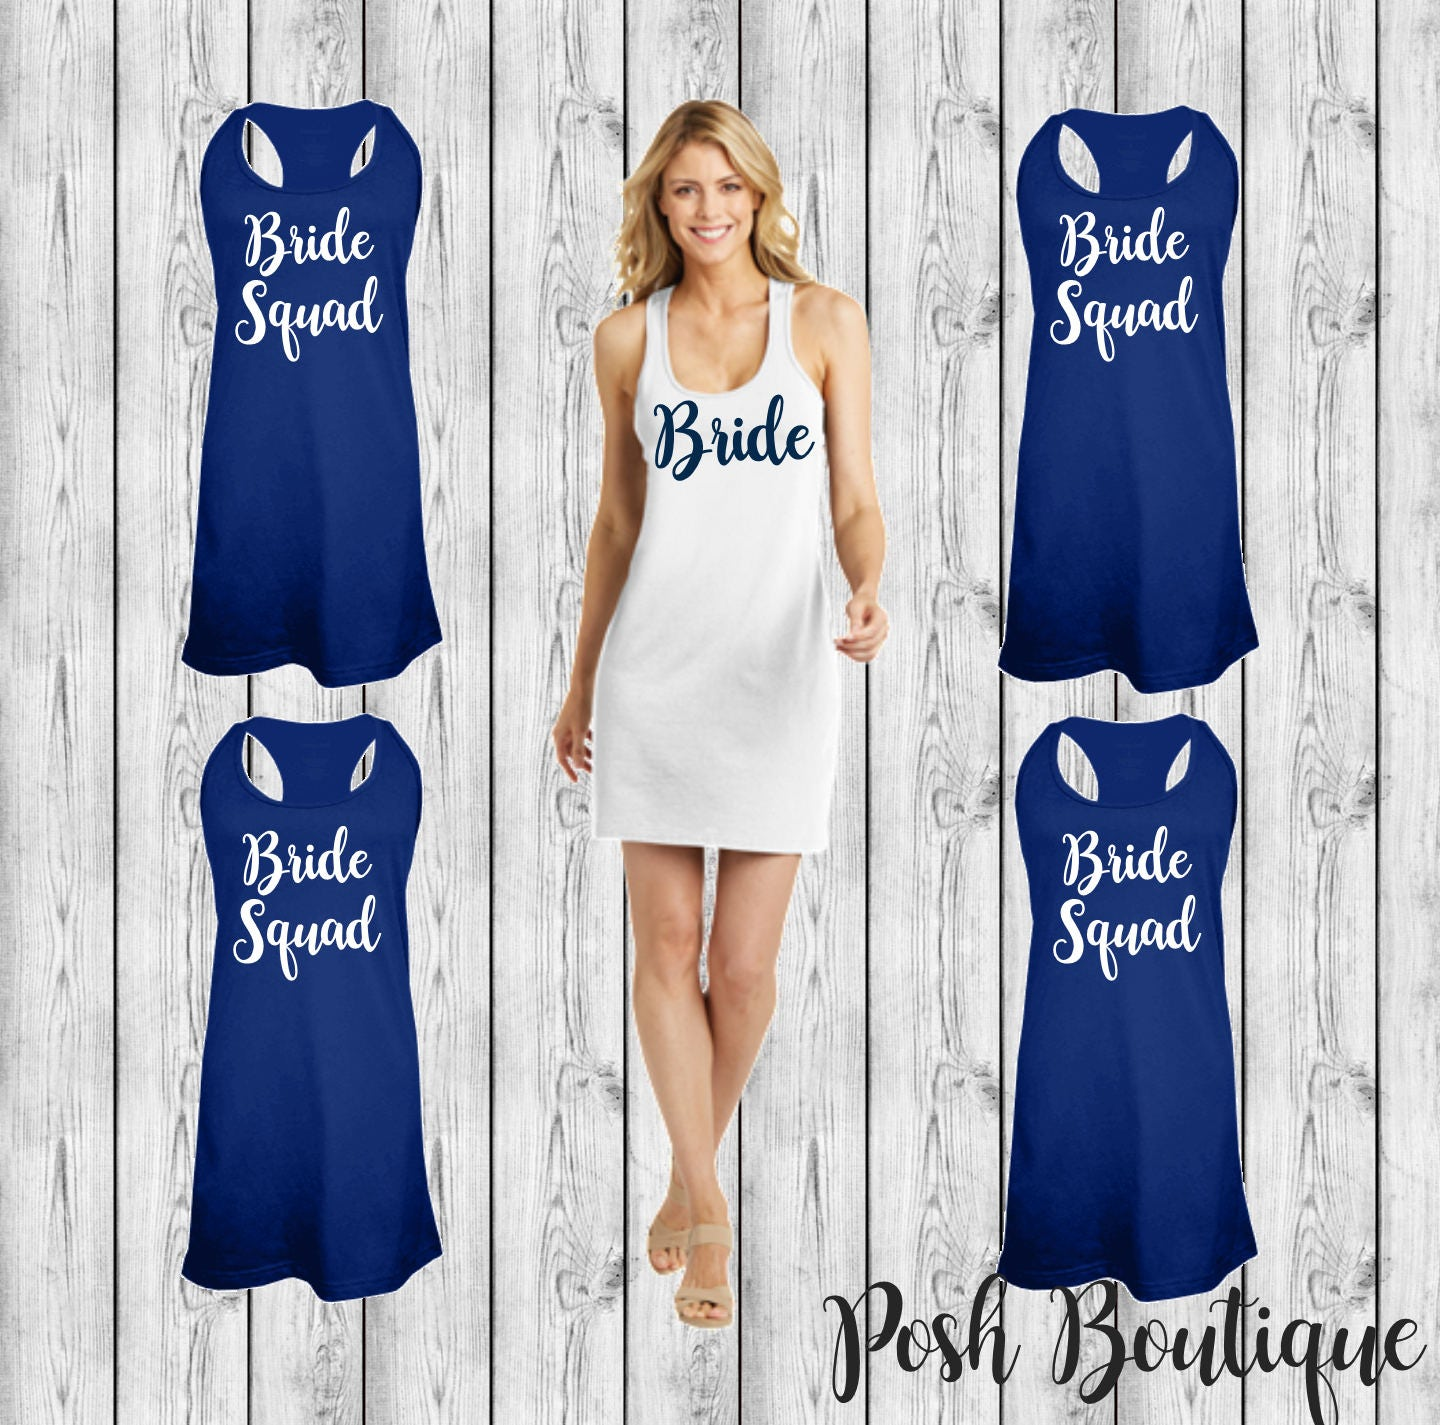 95bacbe930 Bride Swimsuit Coverup, Bridesmaid Swim Cover Ups, Monogrammed ...